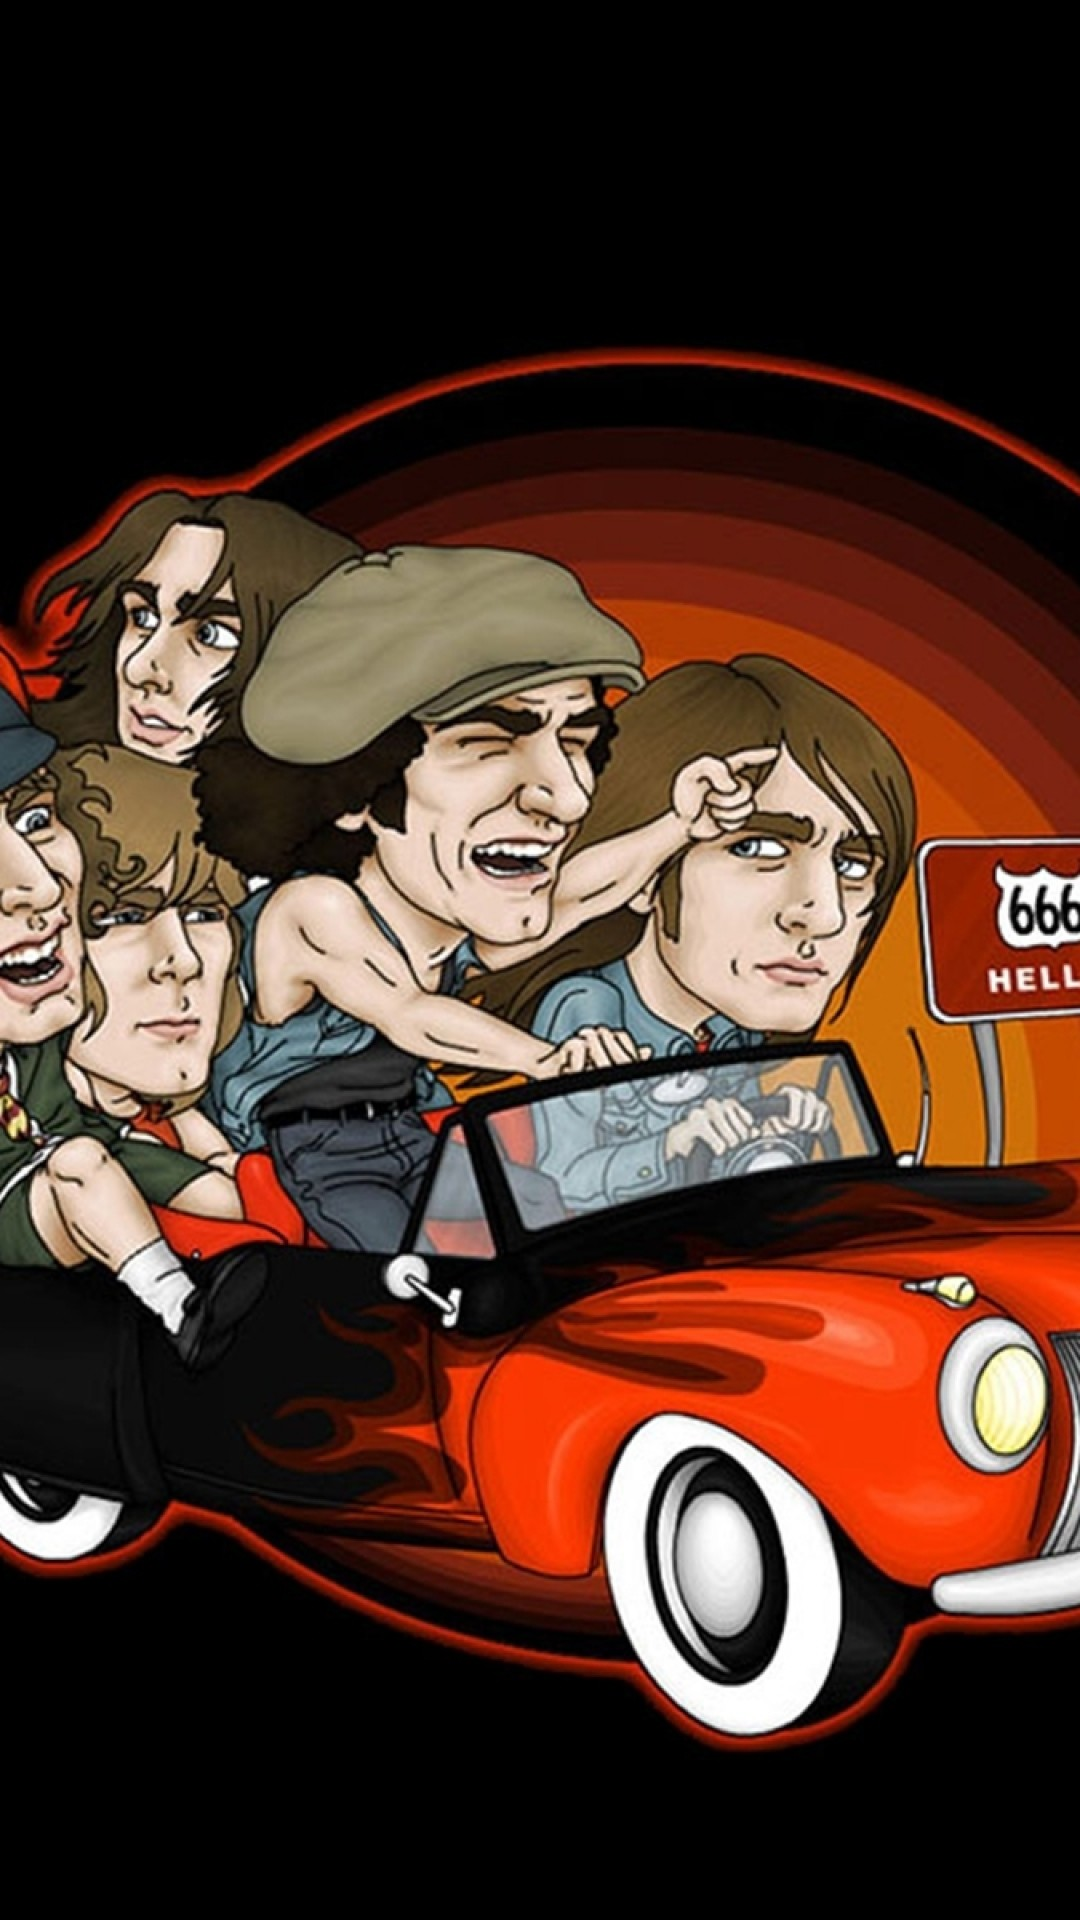 Preview wallpaper acdc, picture, car, direction, sign 1080×1920